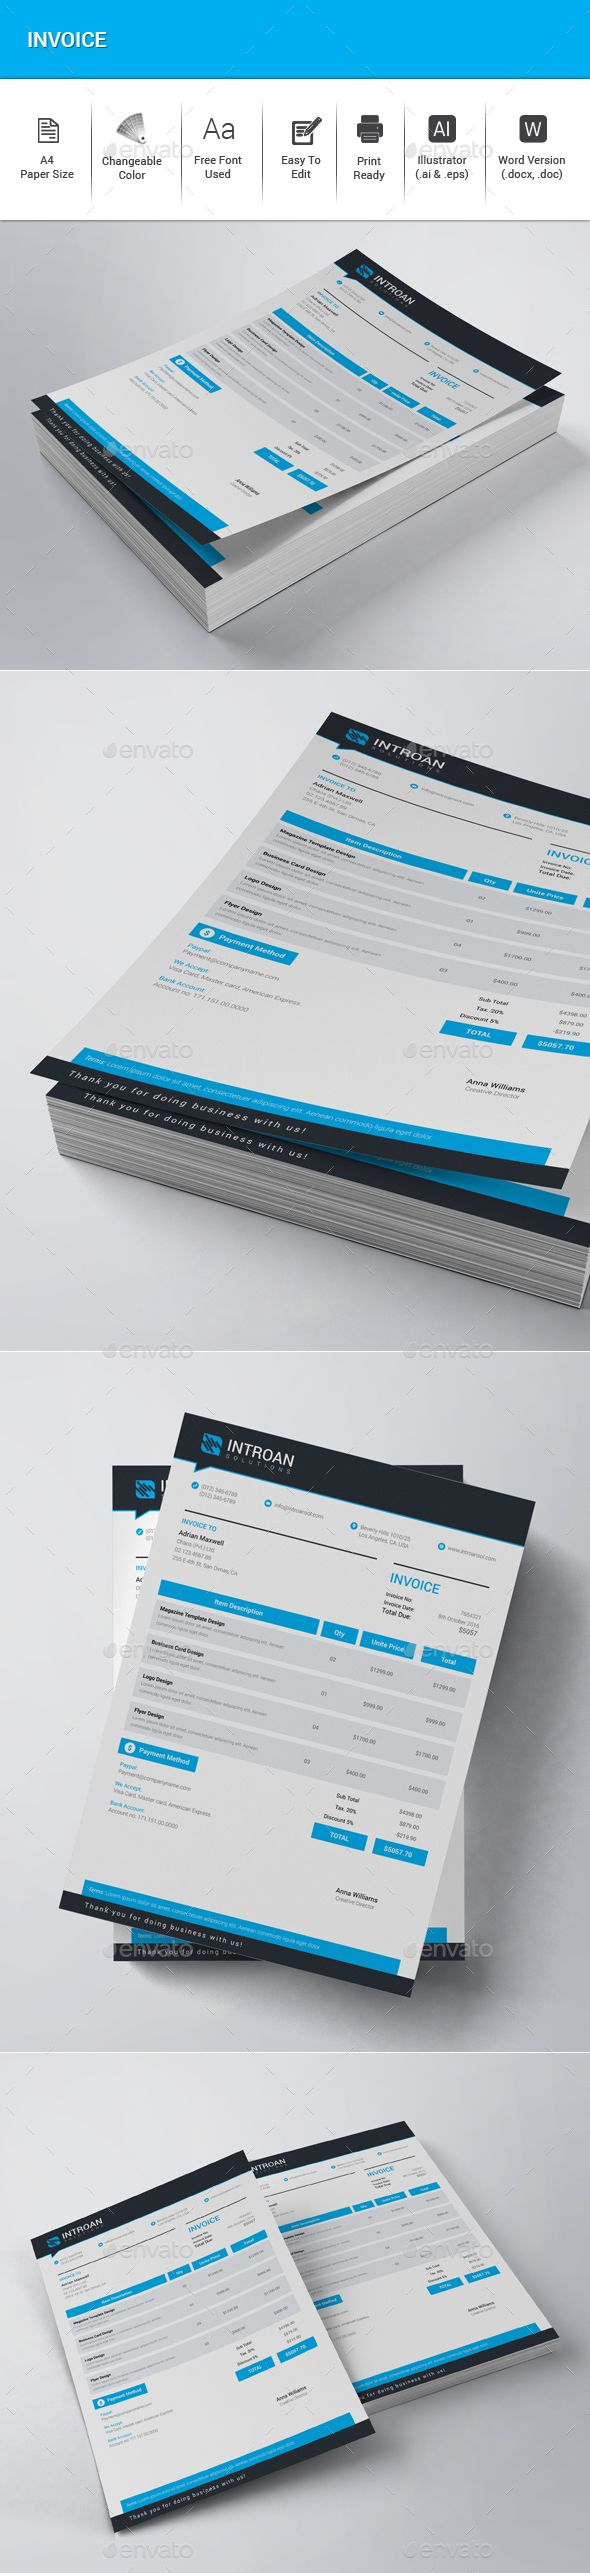 free proposal template%0A Invoice